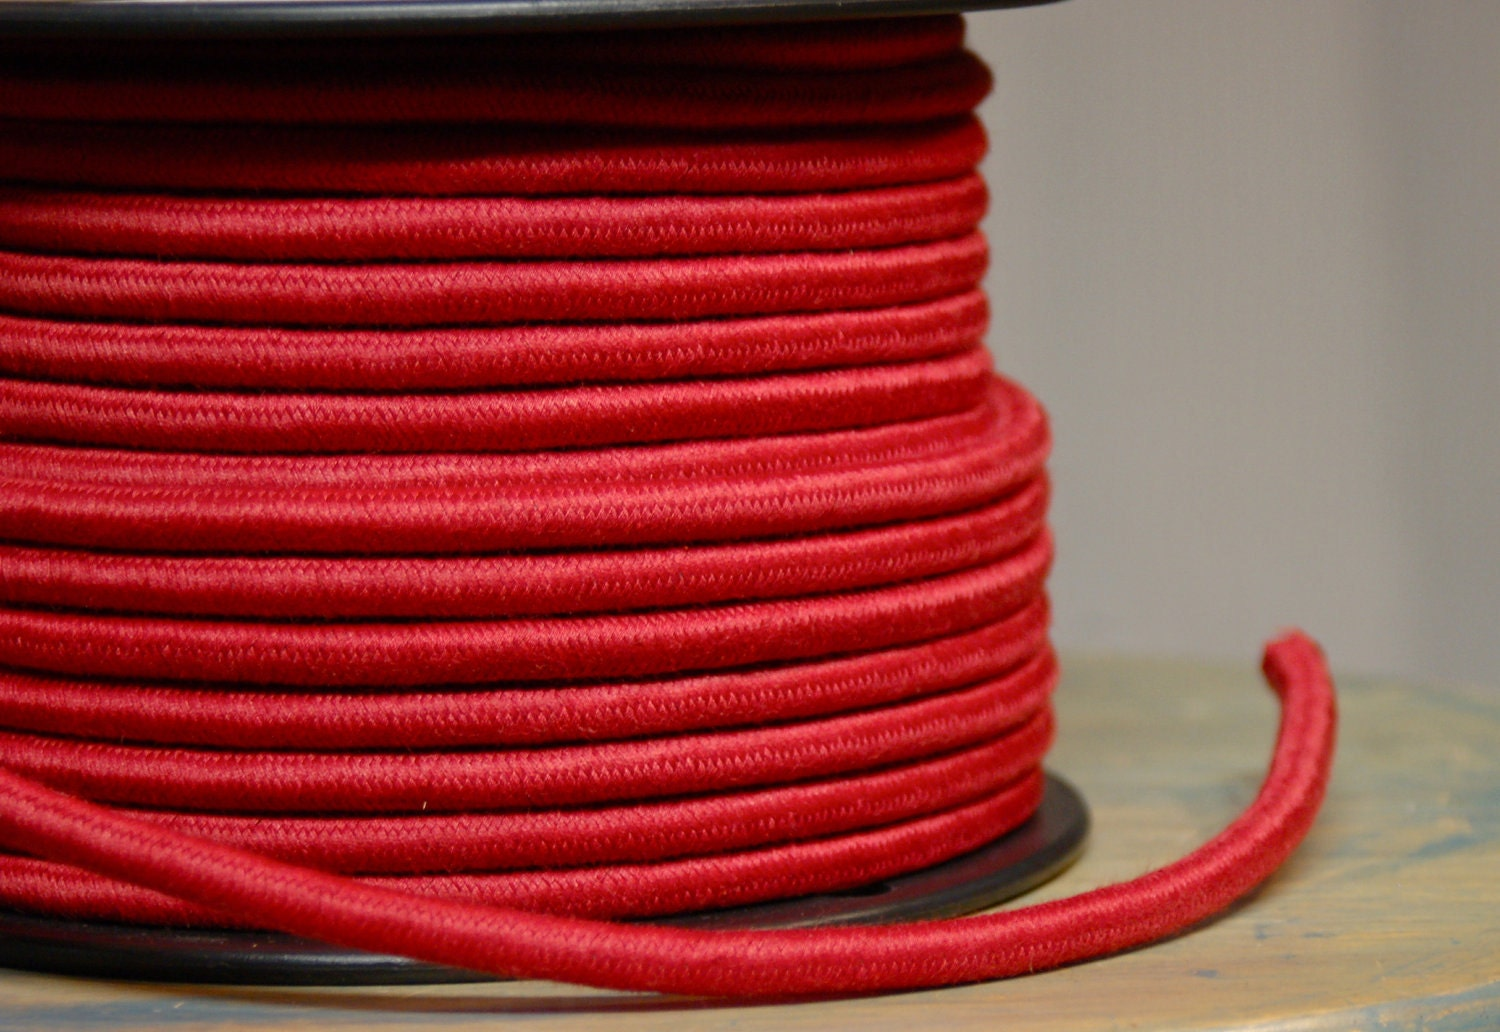 feet red cloth covered 3 wire round cord vintage style